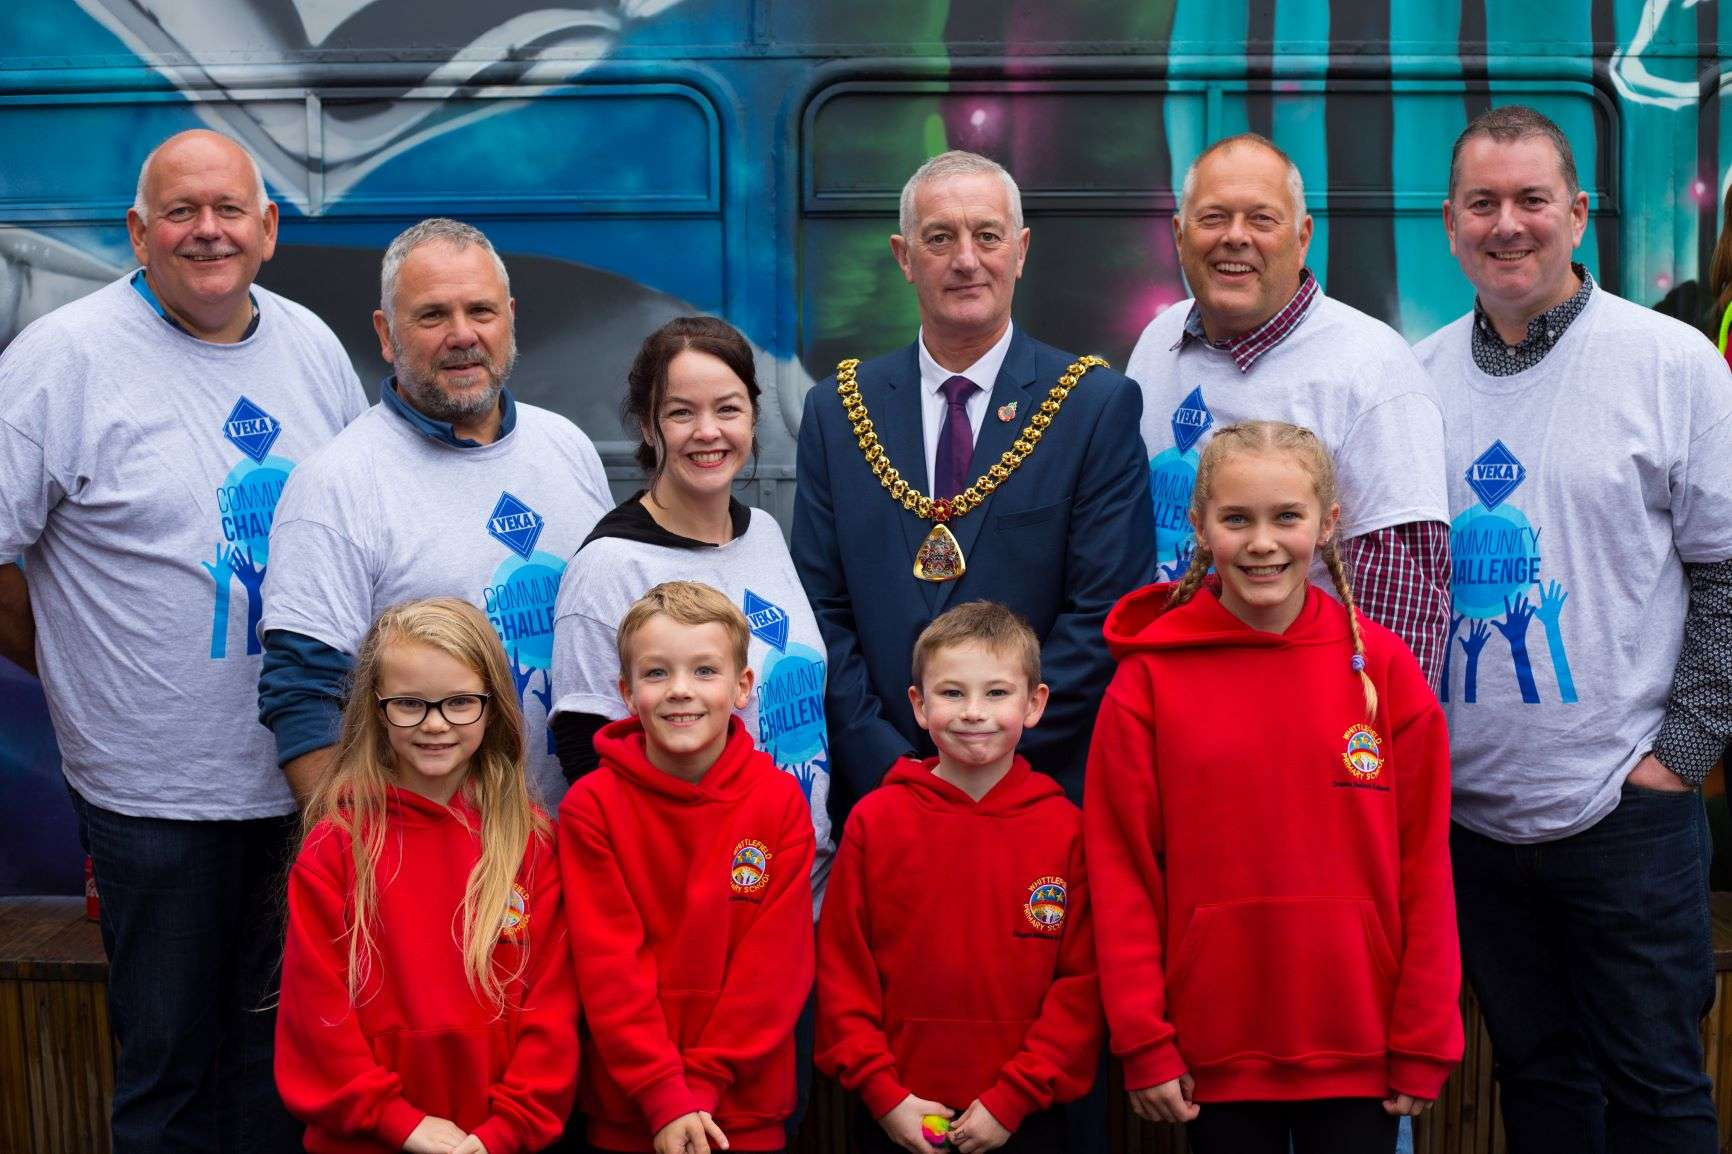 VEKA Directors, the Mayor and the children stood proudly next to the bus